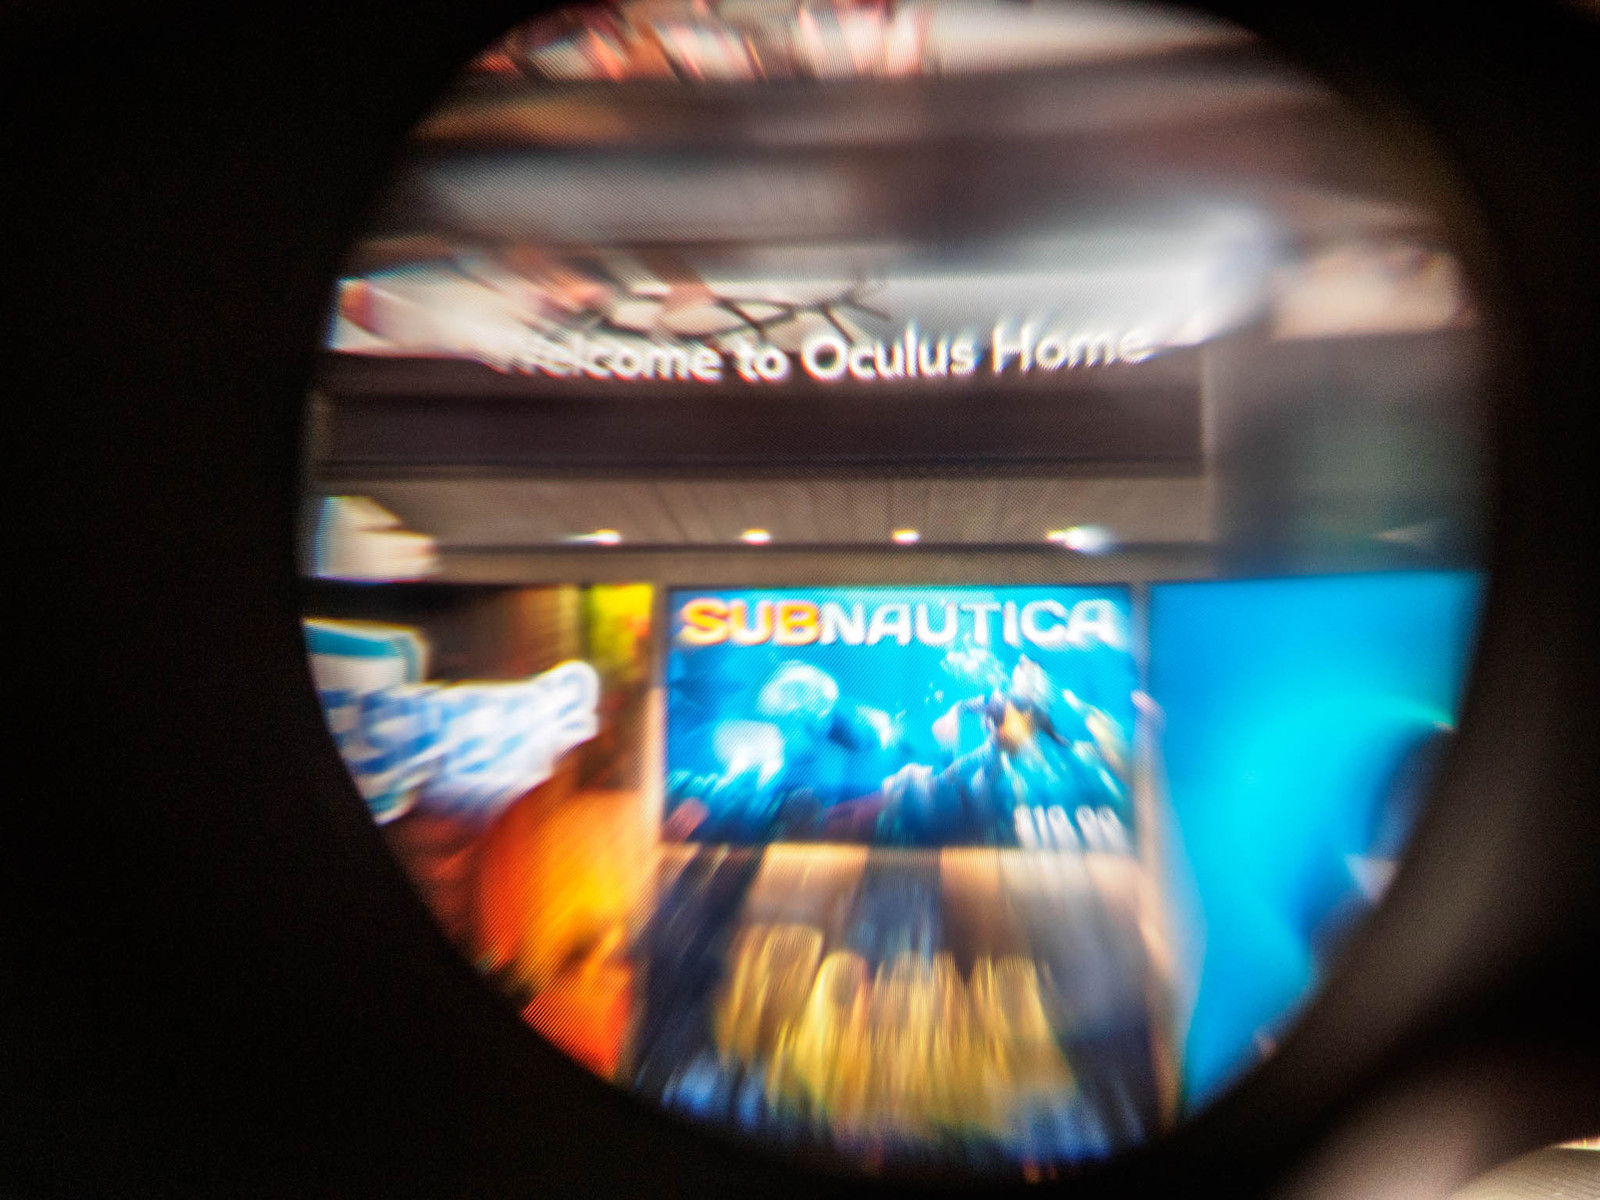 How to record Oculus Rift gameplay